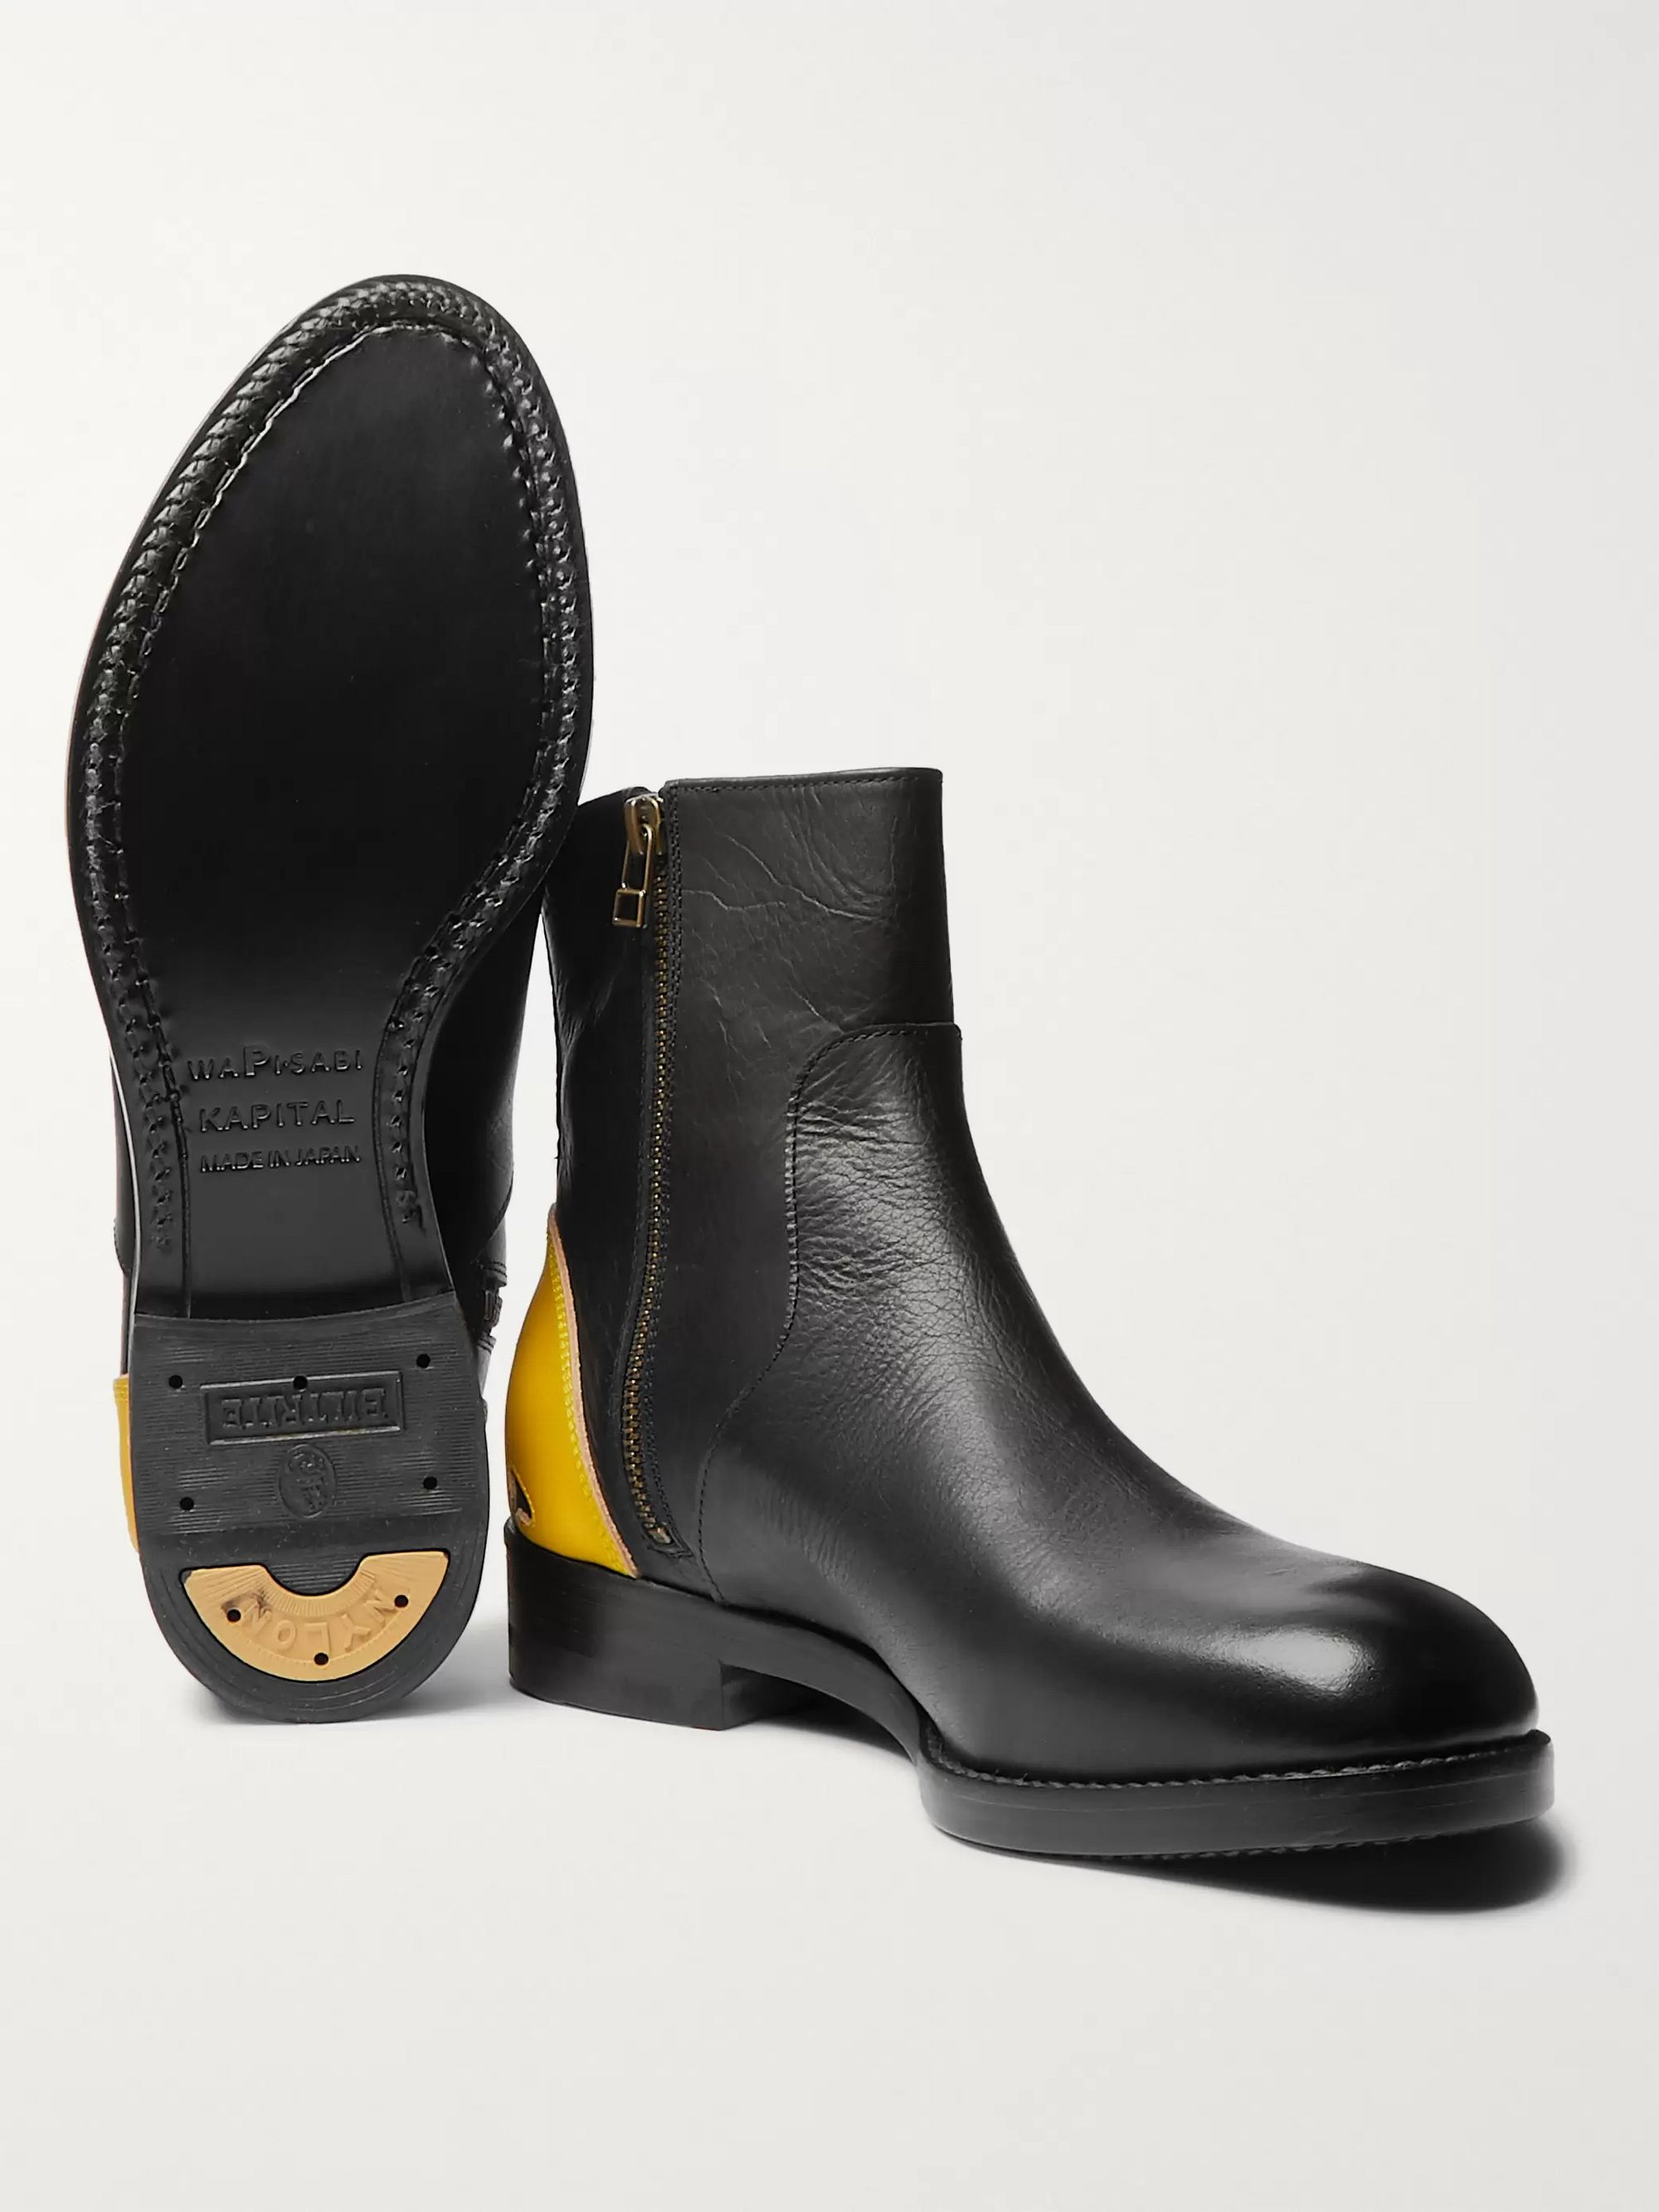 KAPITAL Smiley Leather Chelsea Boots